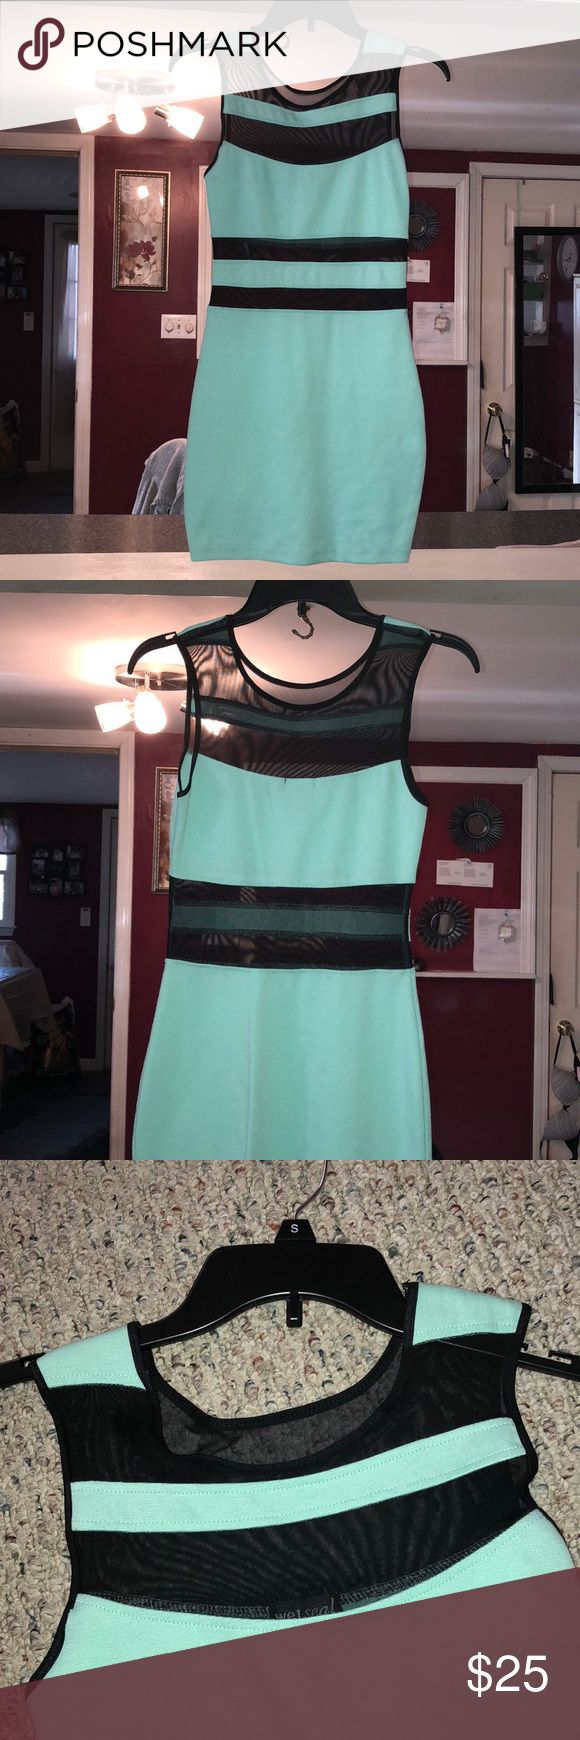 Night out dress Fun dress for a night out, definitely different! Mint green with black mesh at the top and stomach area. Worn once, loved it! Wet Seal Dresses Mini